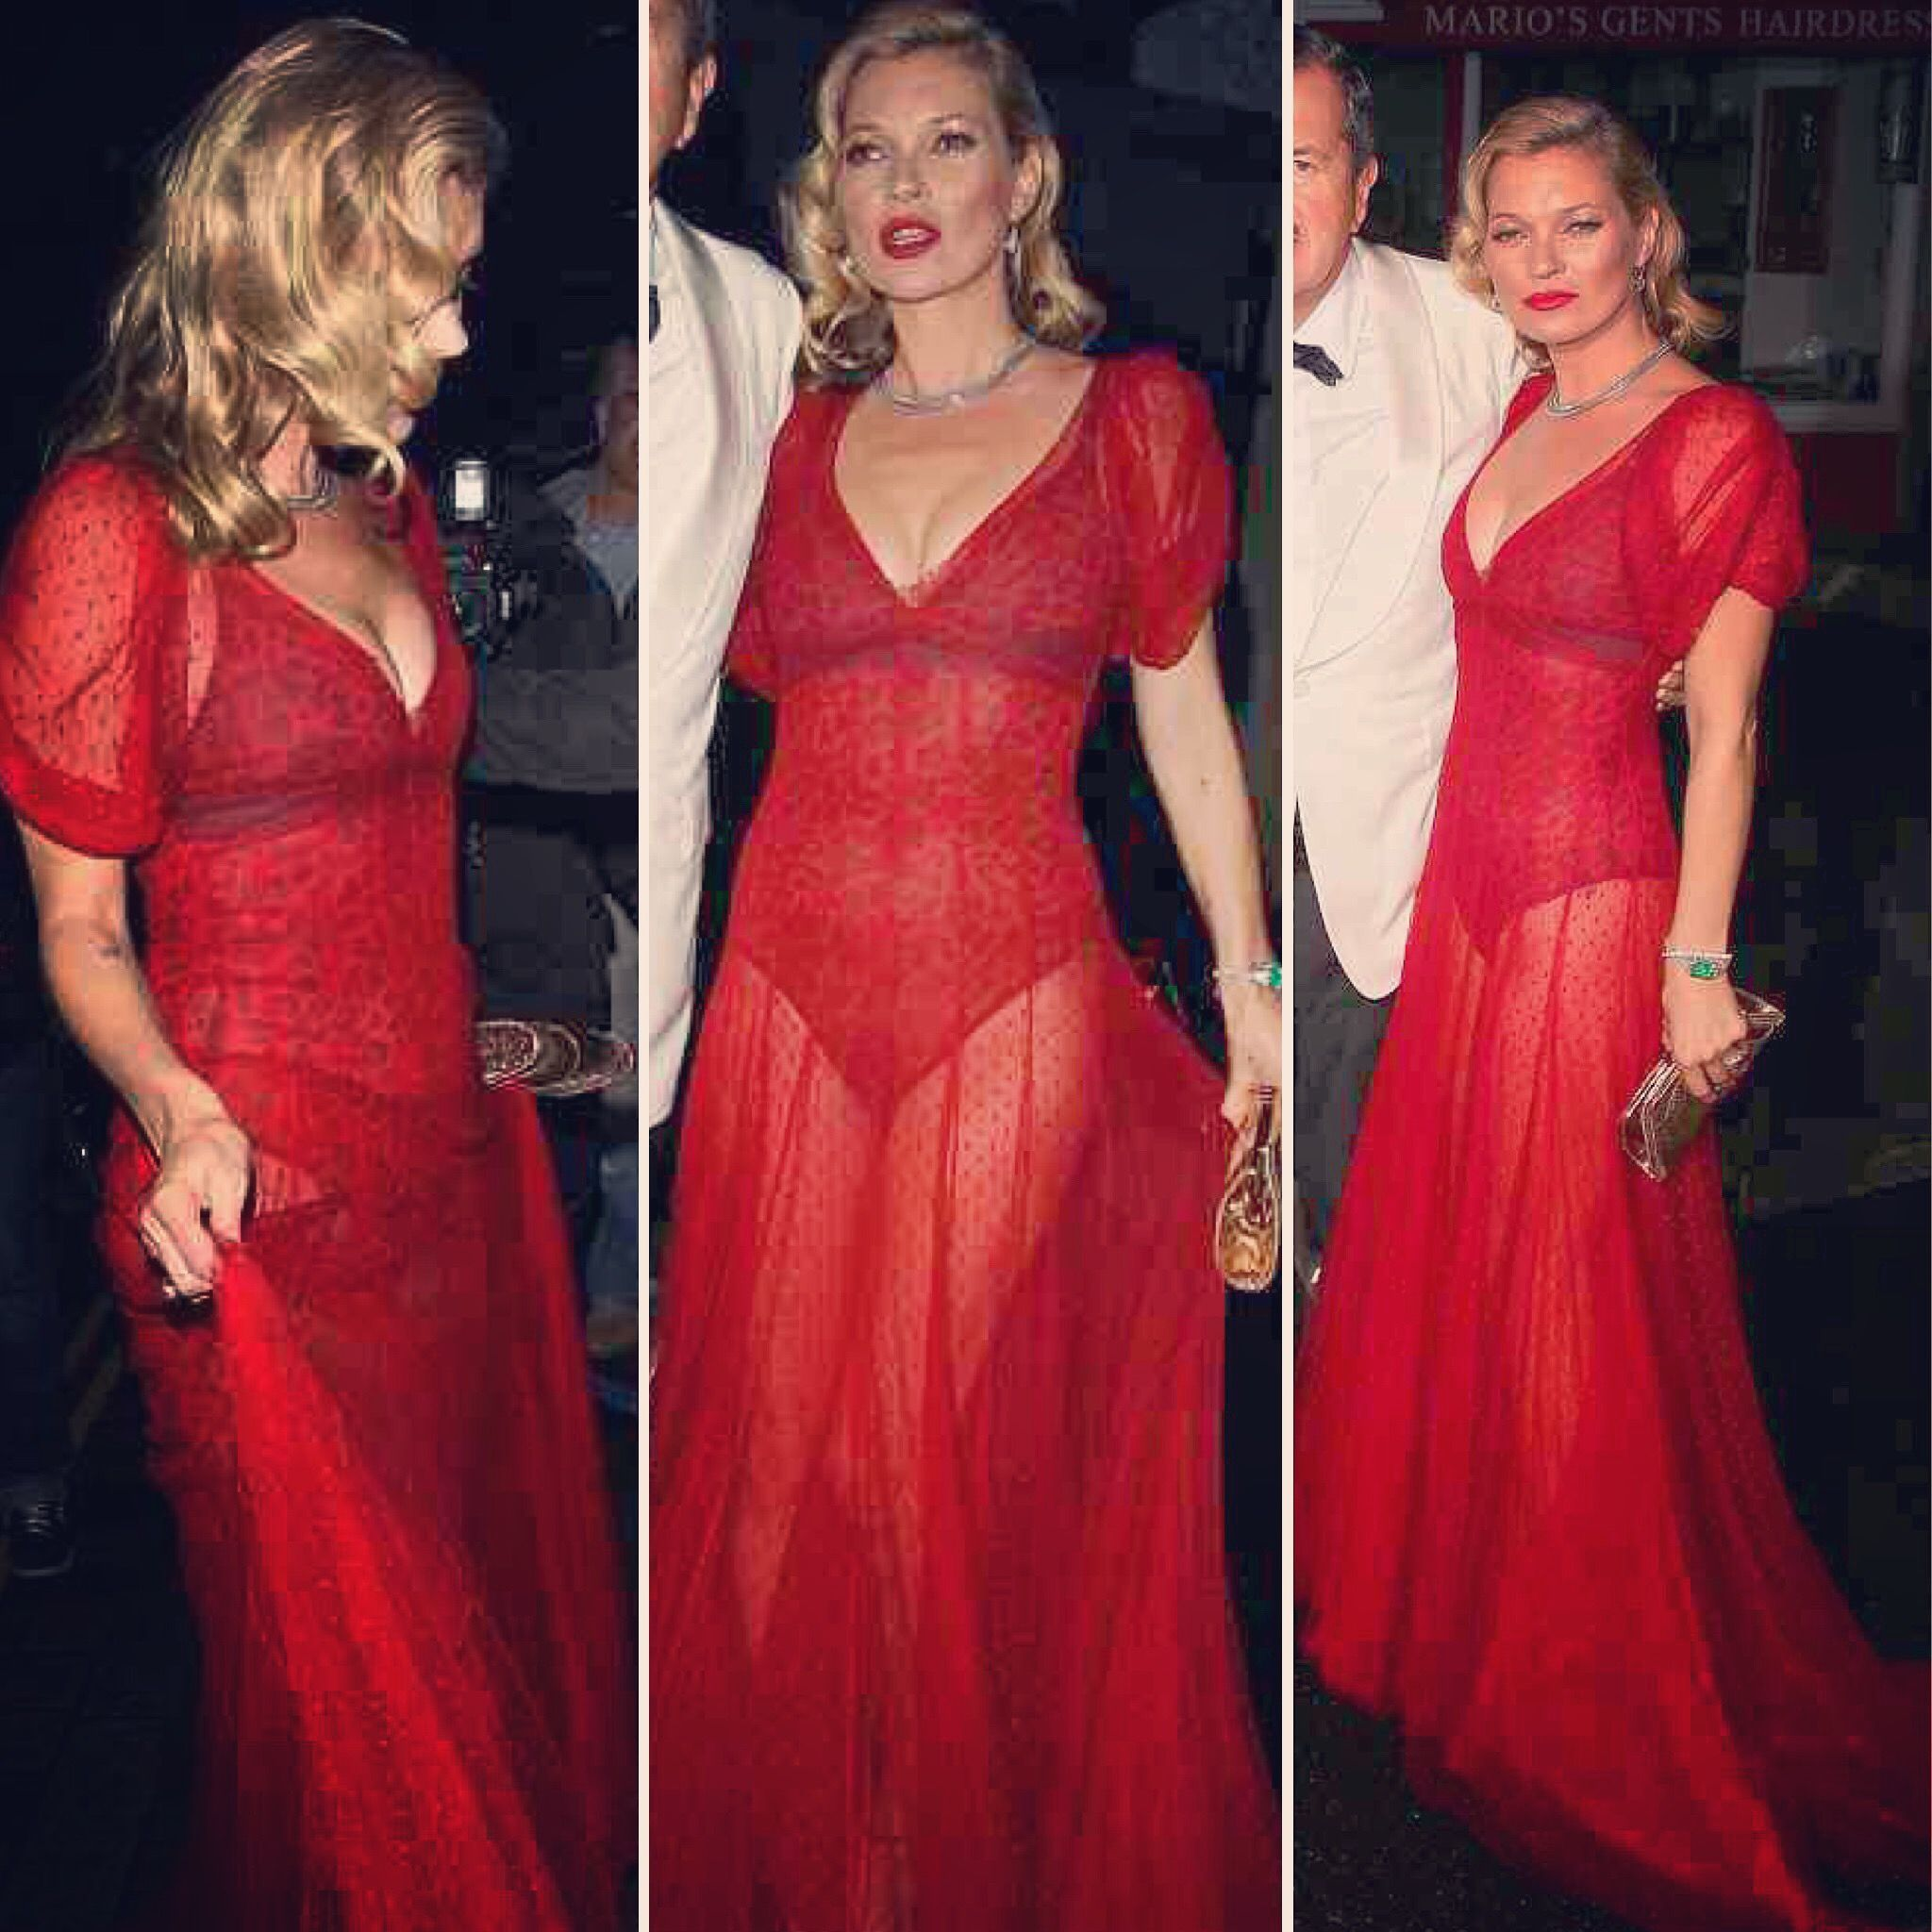 We're excited to say the iconic #halfpennylondon Spotty tulle dress seen here in Red on the epic and gorgeous #katemoss is available in the next collection in Ivory as a wedding dress or bespoke orders in other colours. It's lined of course for your wedding. That is unless you're rock and roll enough to wear it with a leopard print body underneath like Kate did. #bridalstyle #weddingdress #wedding | Halfpenny London on Instagram | Bridal Fashion by Kate Halfpenny